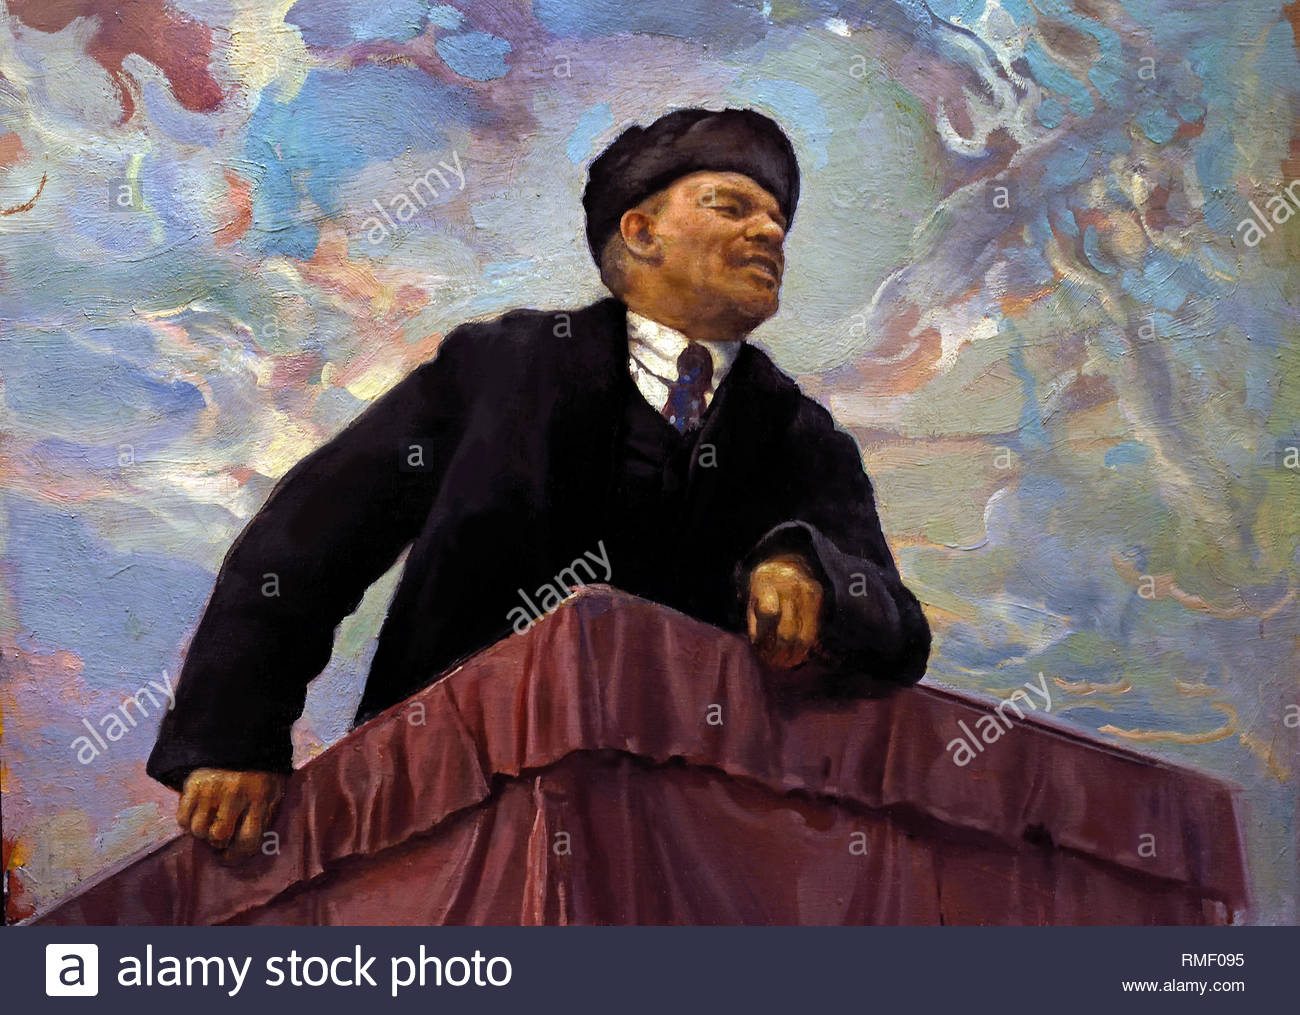 Lenin on the Rostrum ( Lenin at the tribune ) 1927 by ISAAC BRODSKY. Soviet Union Communist Propaganda (Russia under Lenin and Stalin1921-1953 ). - Stock Image